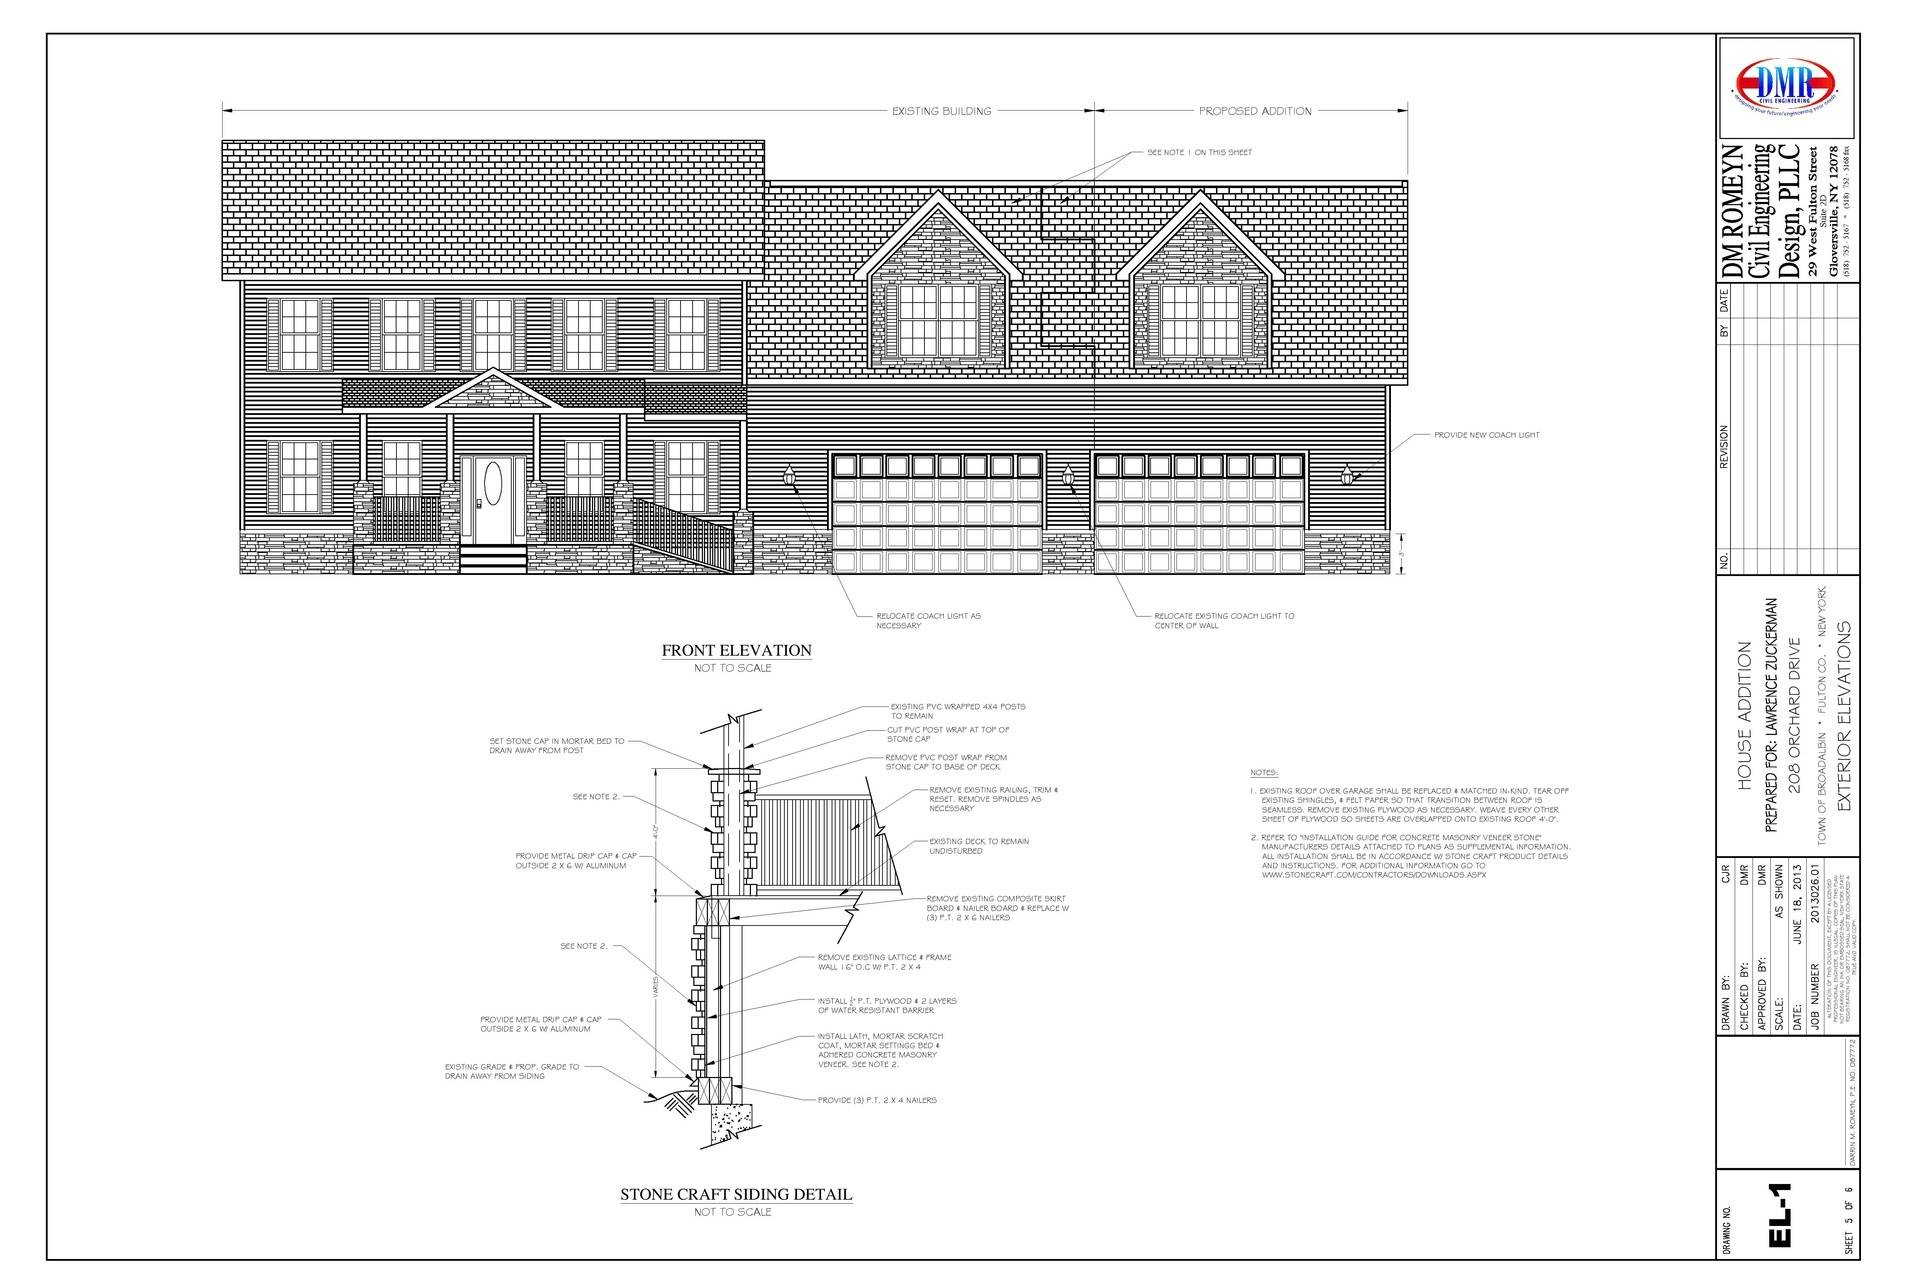 Exterior Elevations & Section